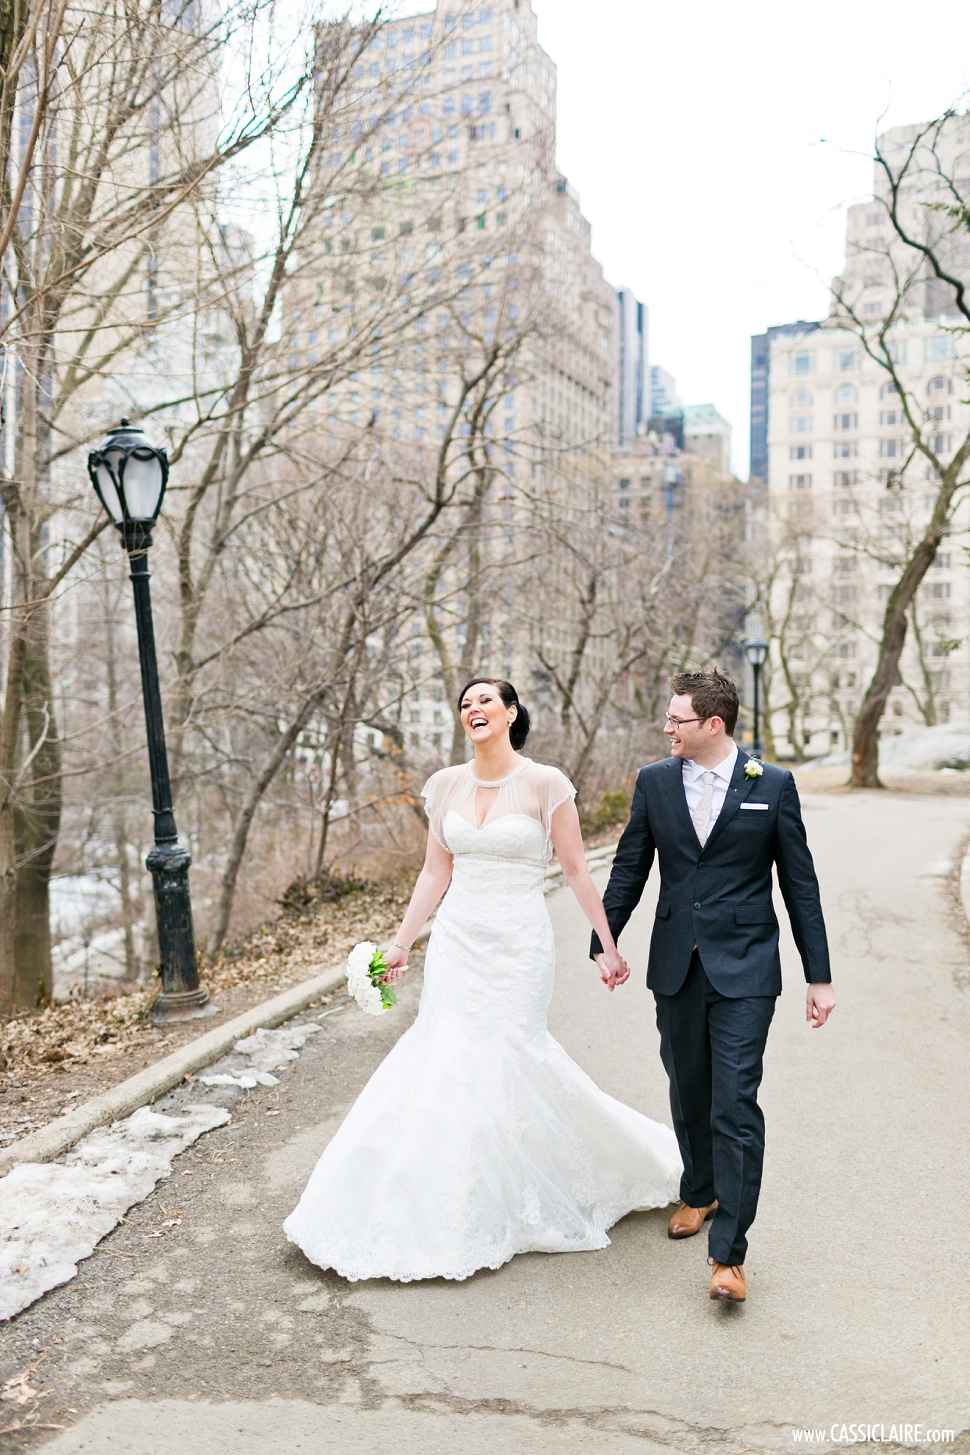 Central-Park-Wedding-Cop-Cot_Cassi-Claire_11.jpg